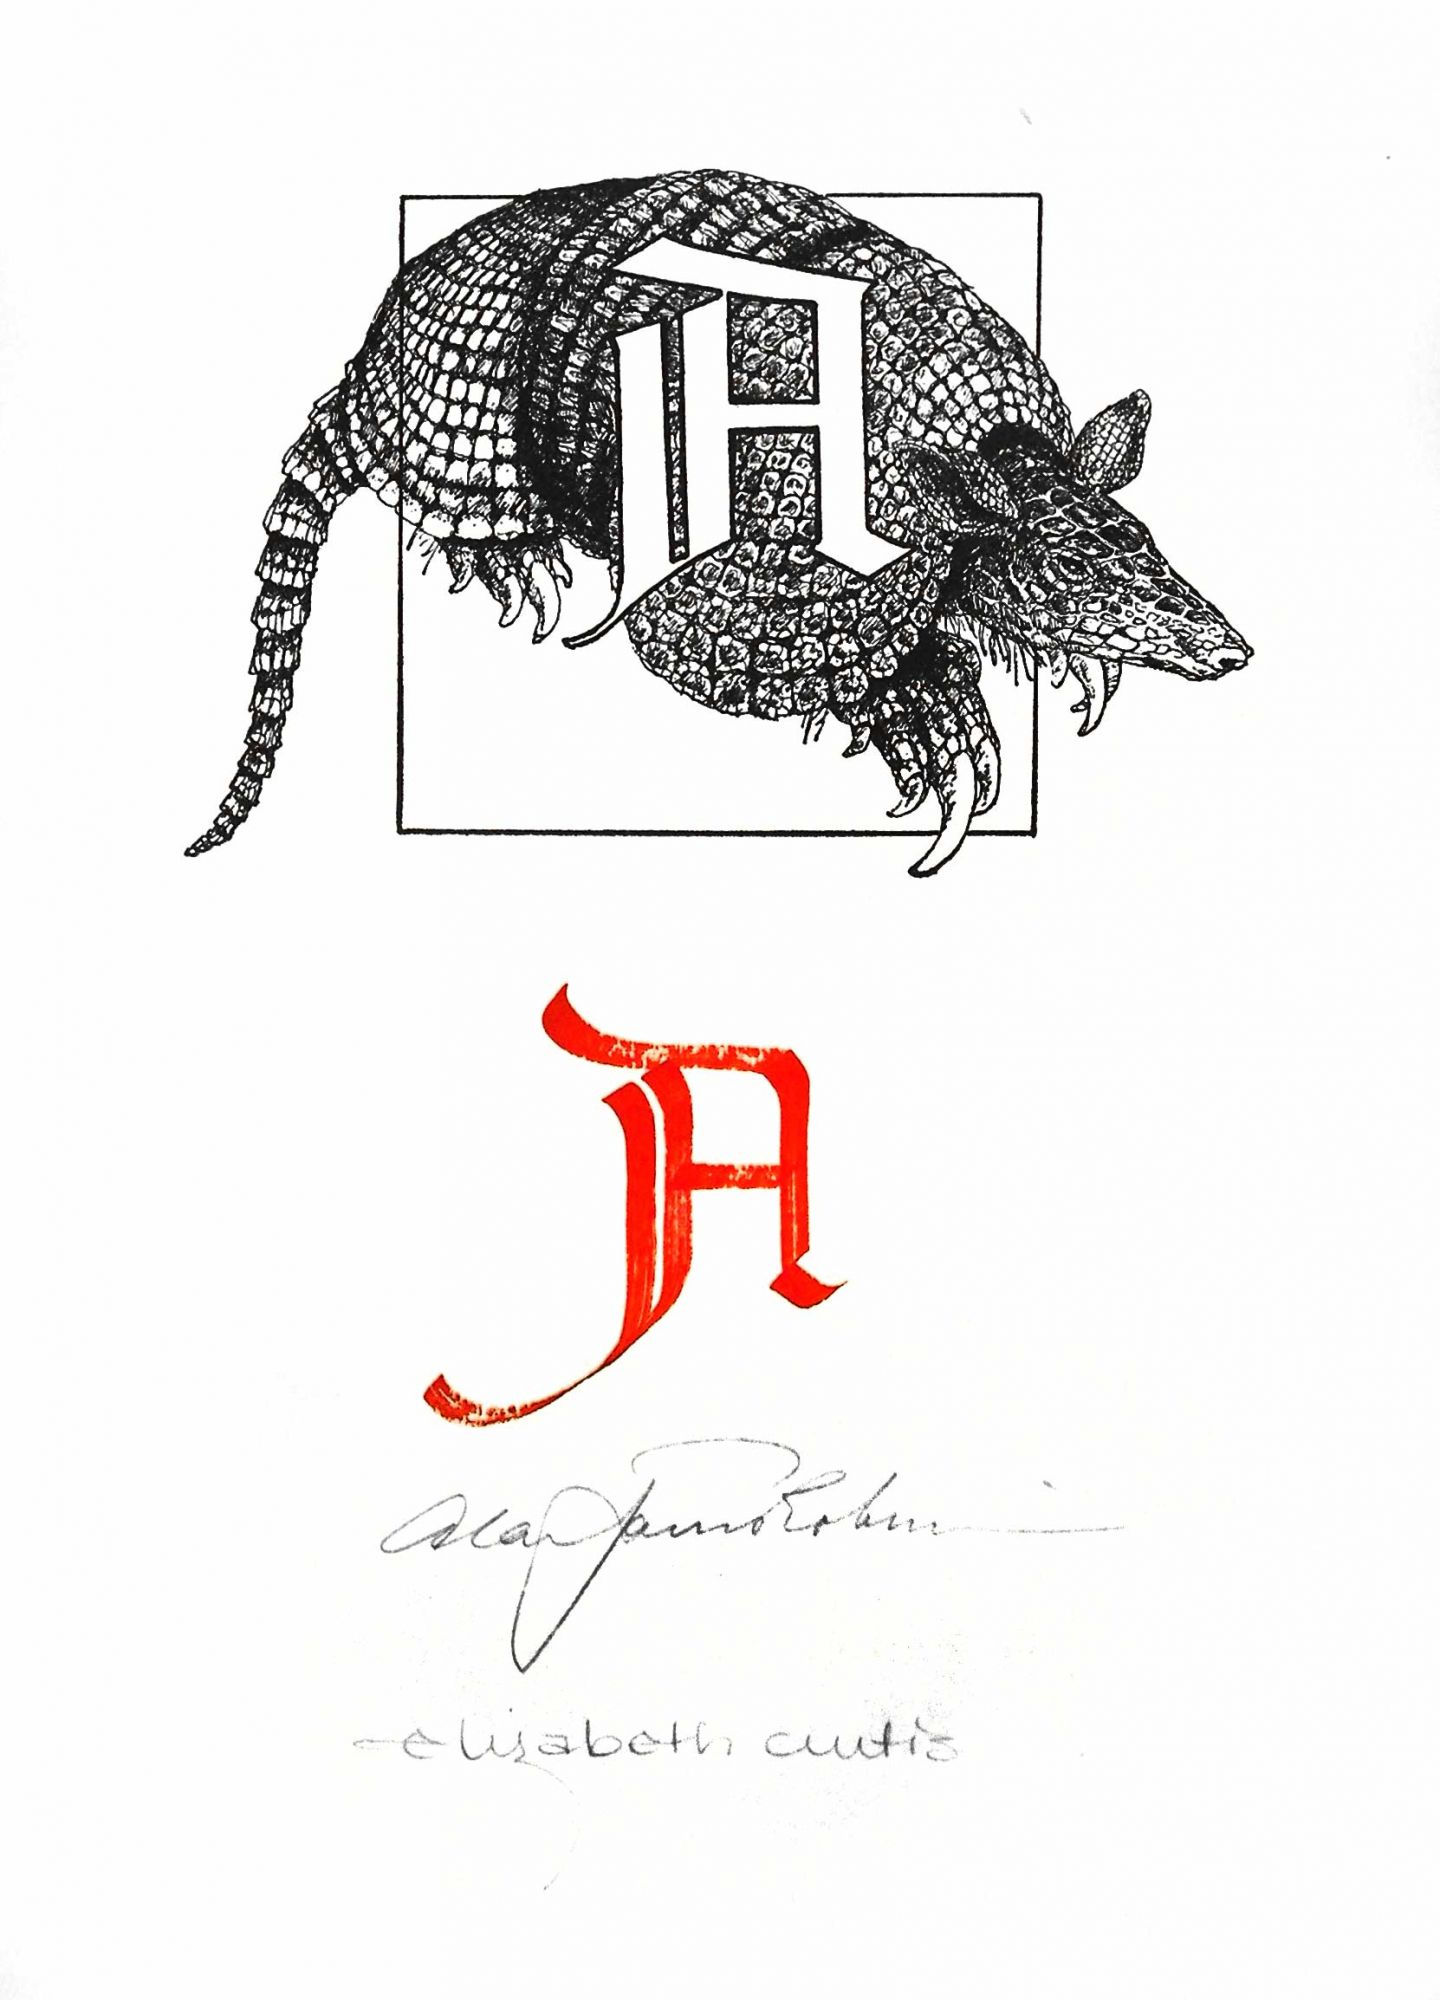 An Odd Bestiary, or a compendium of instructive and